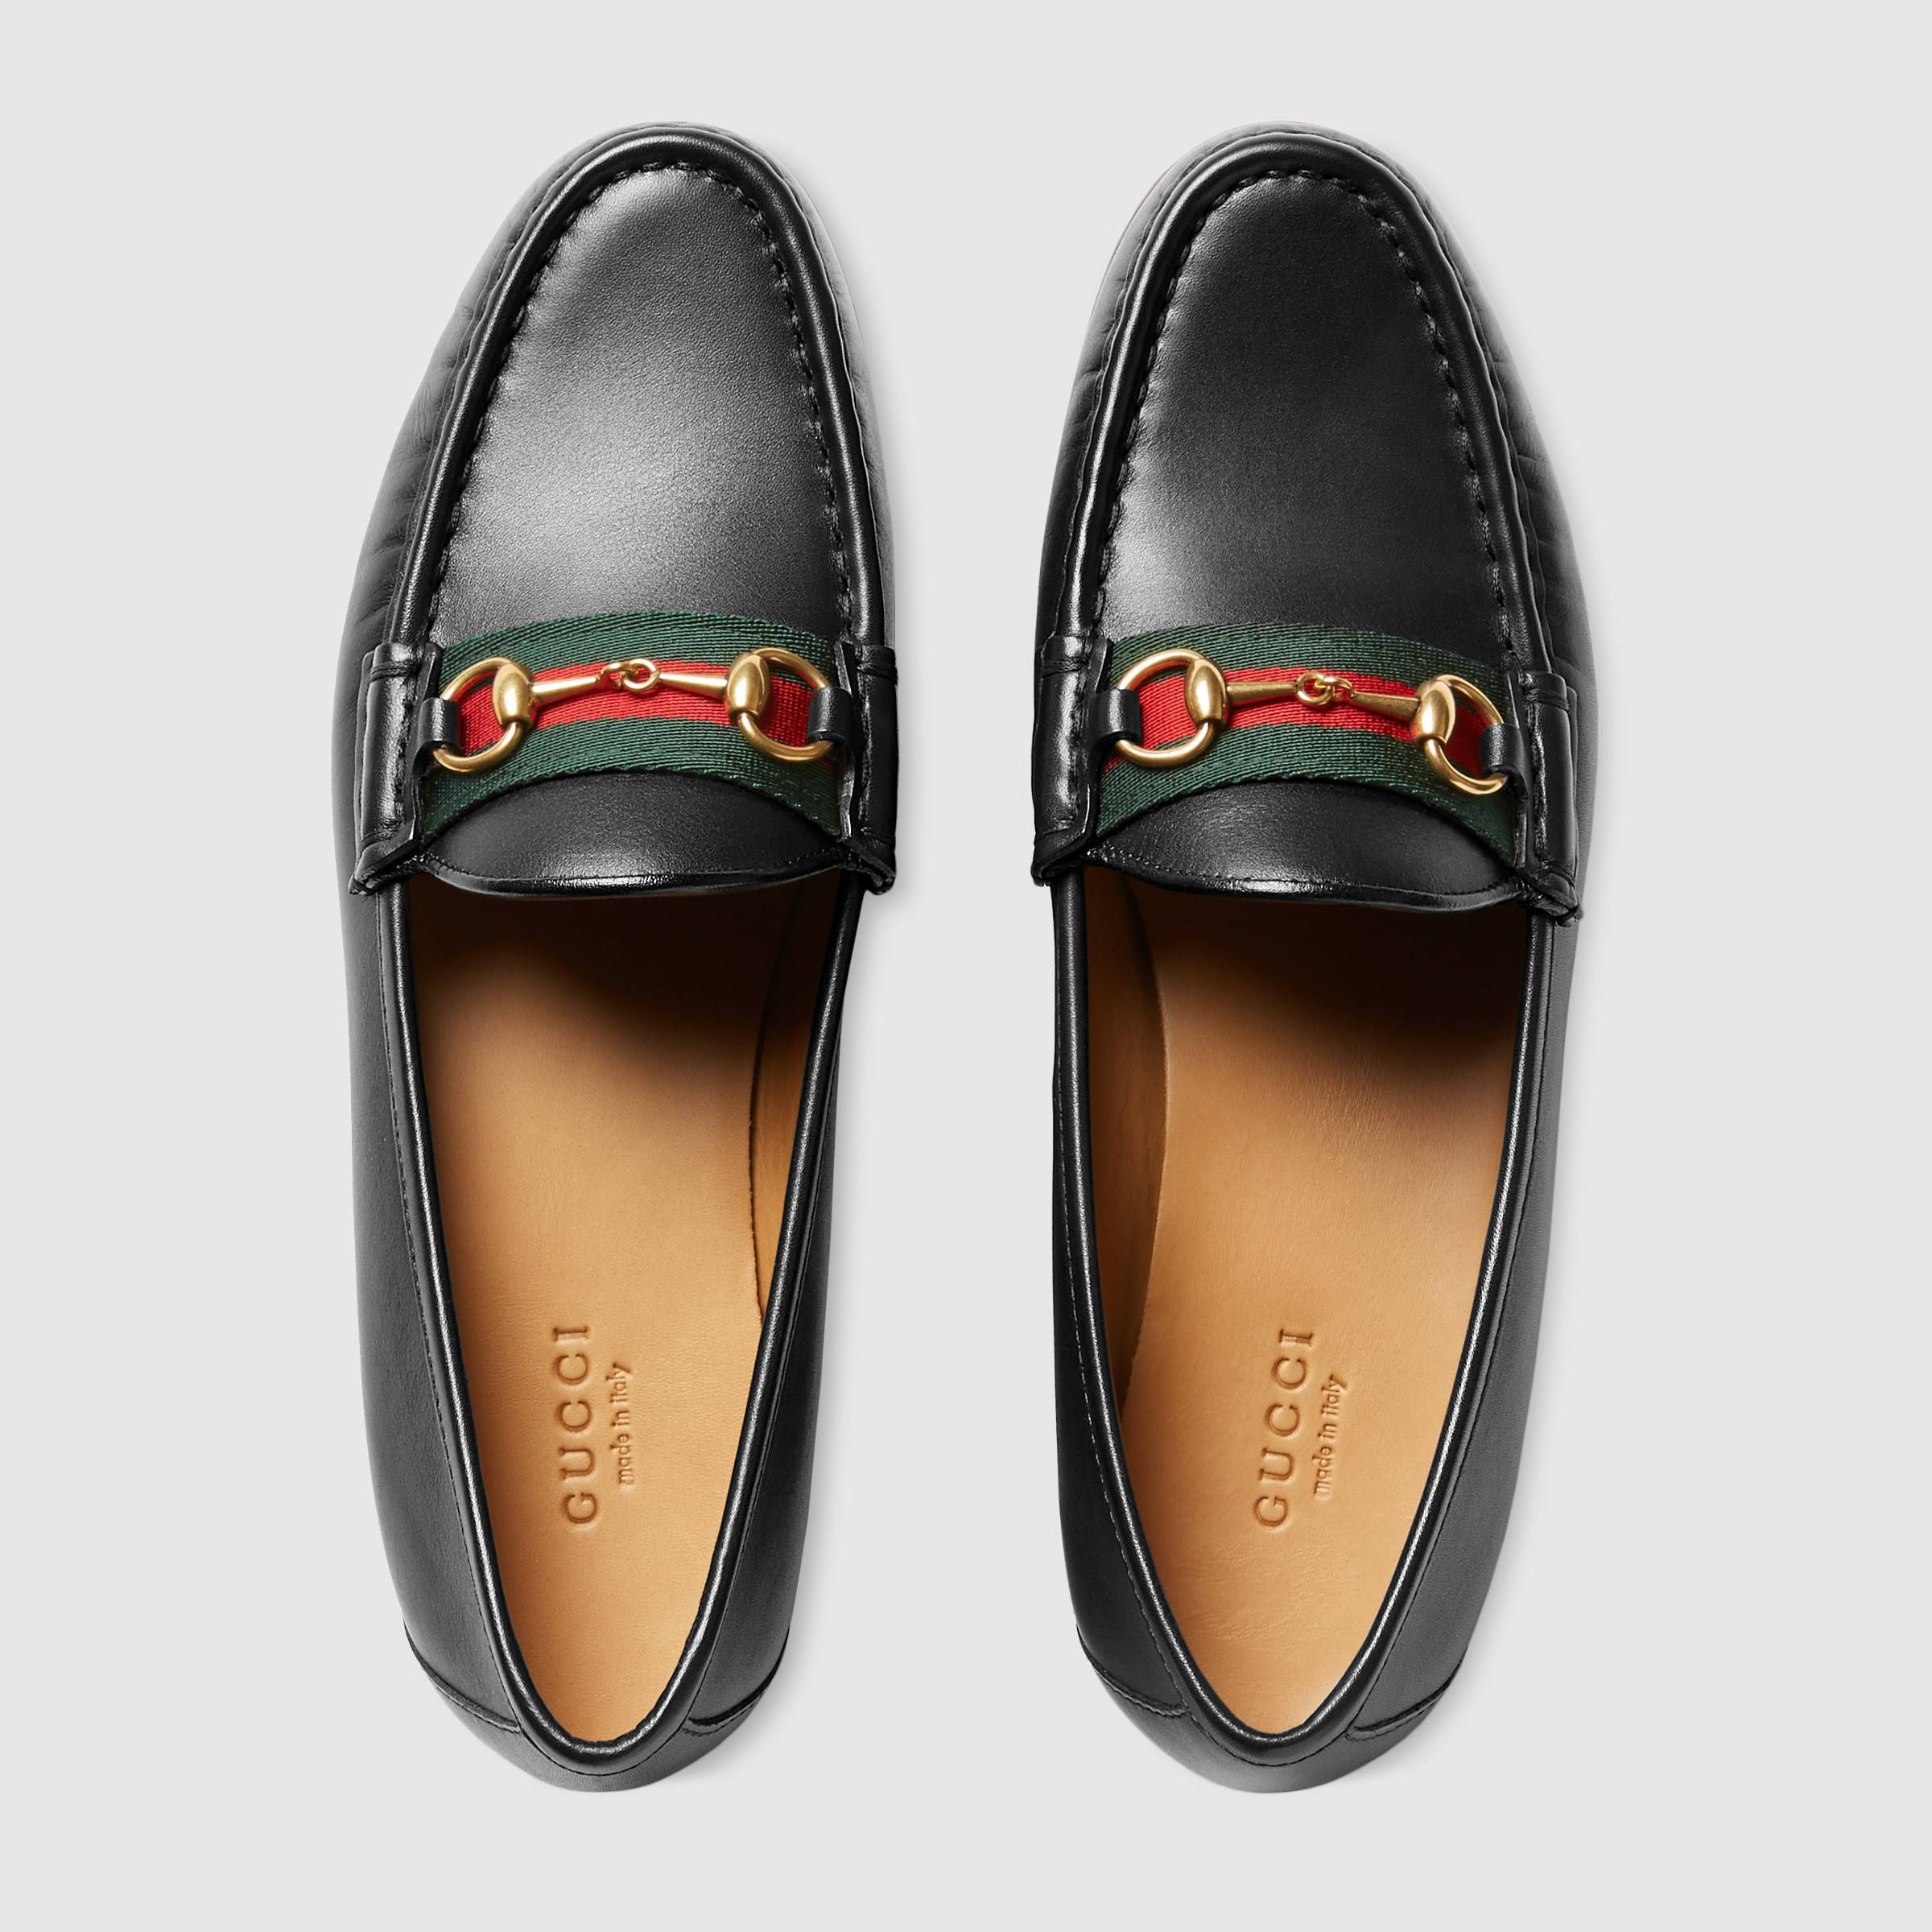 519d2073b Gucci Women - Gucci Black Leather horsebit loafers with web - $640.00